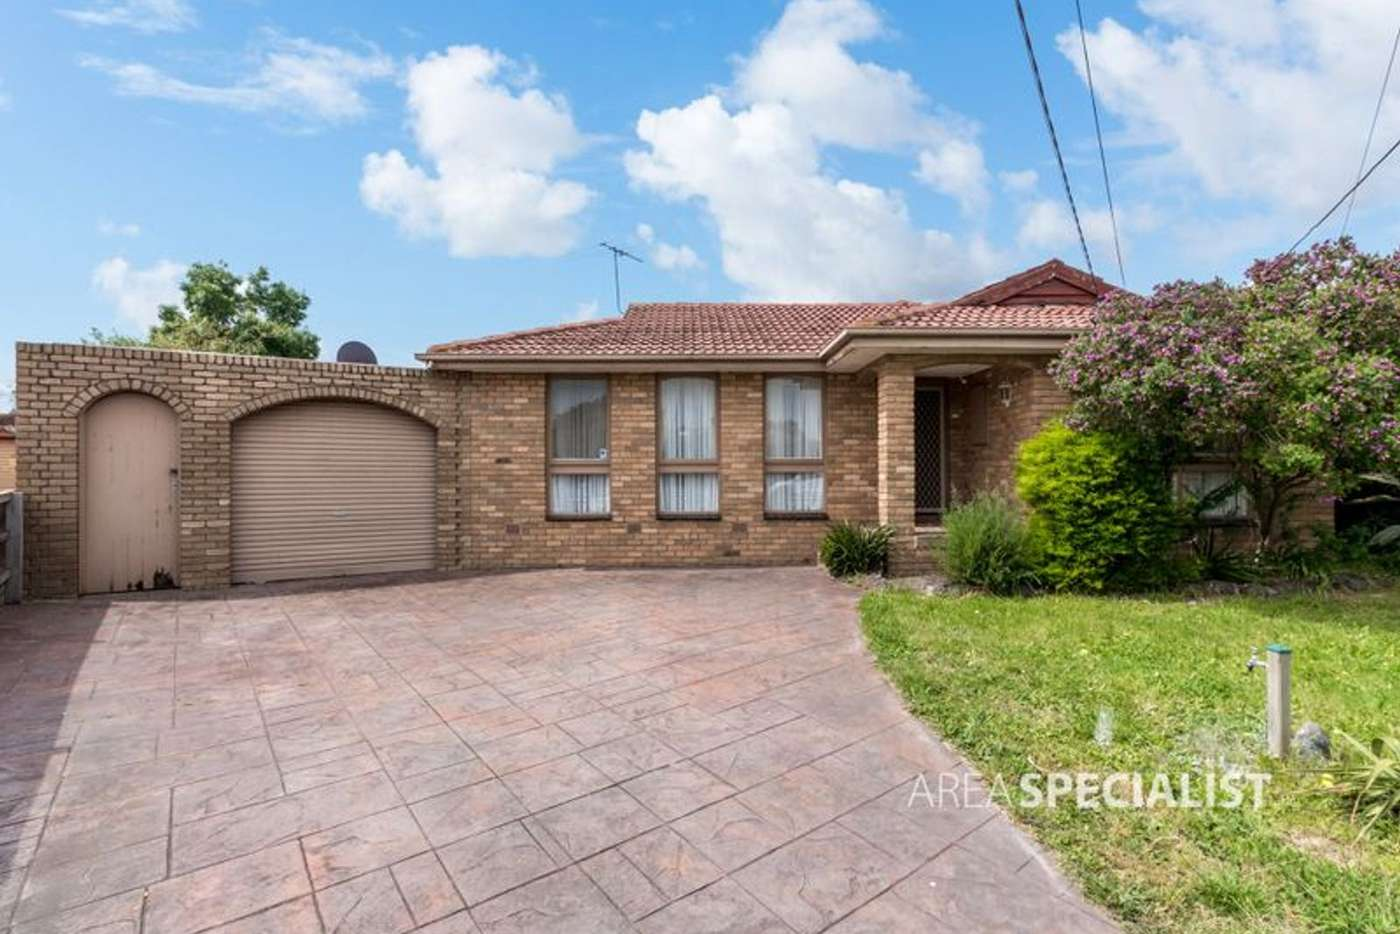 Main view of Homely house listing, 7 Warragamba Court, Keysborough VIC 3173